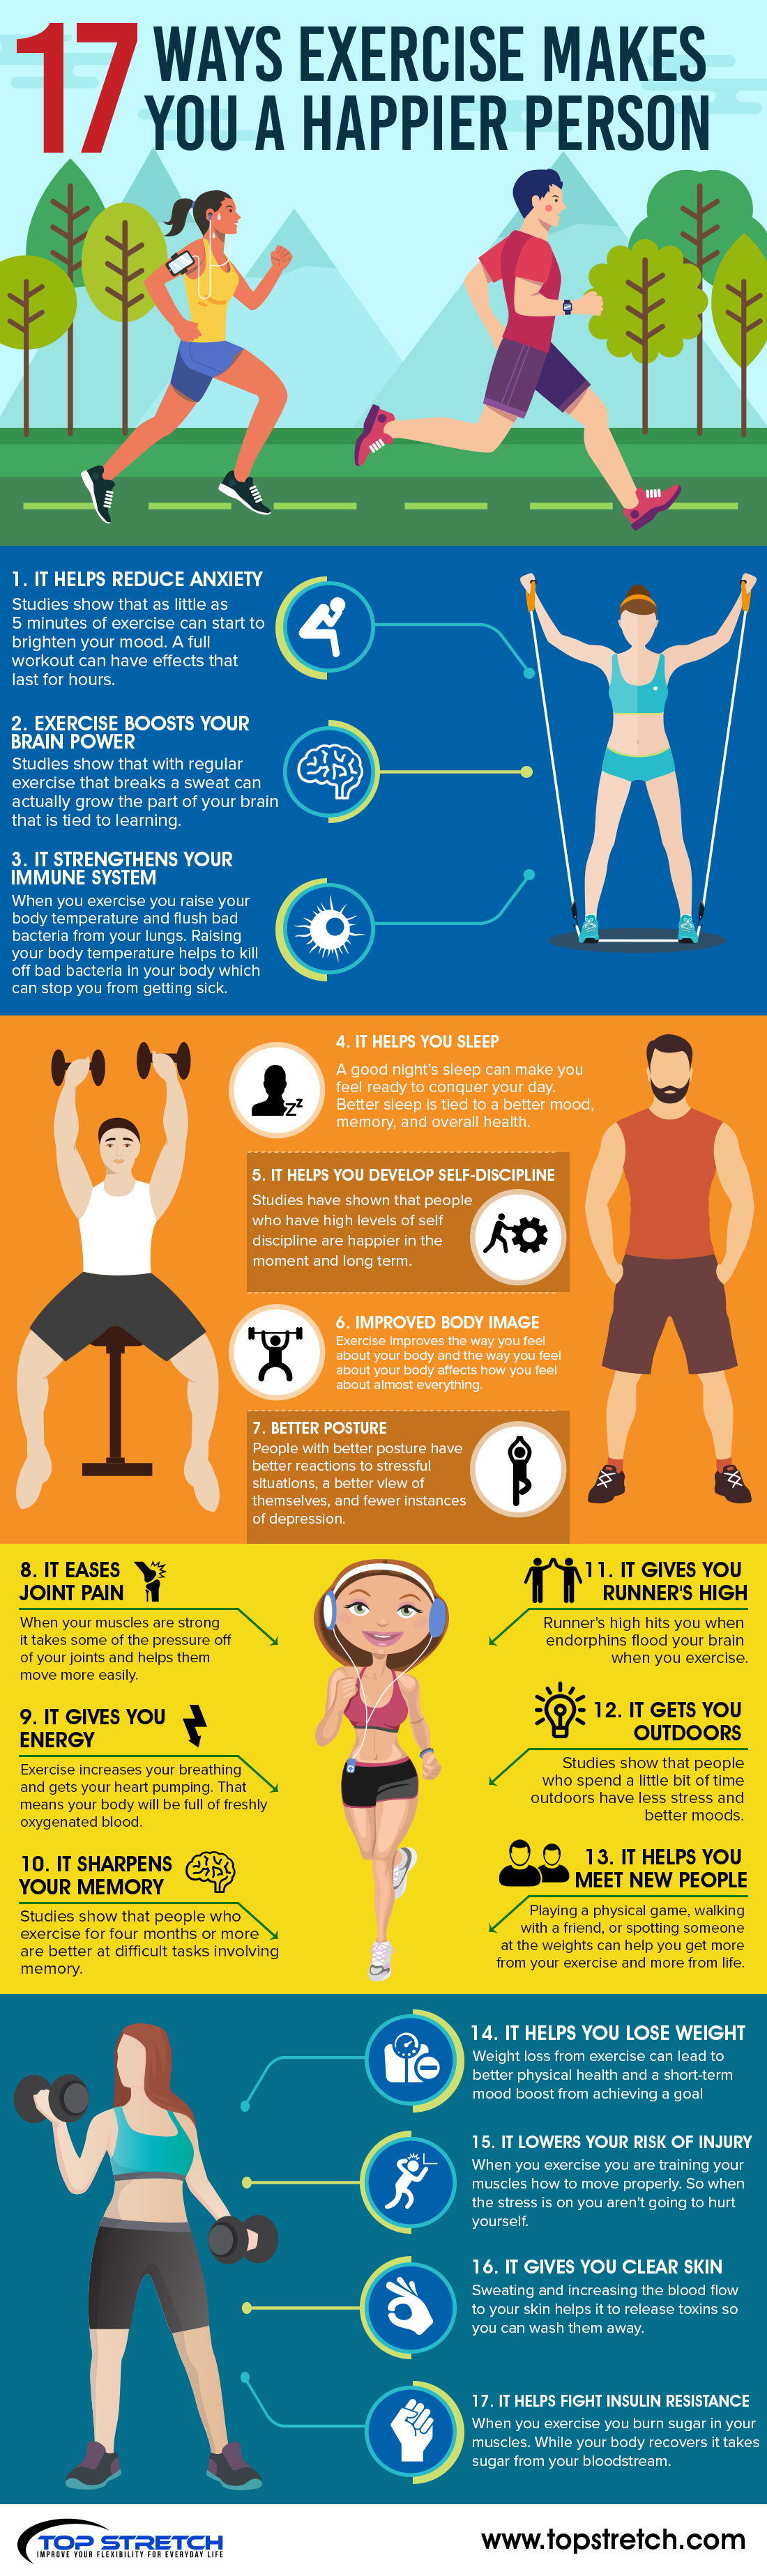 How Exercise Can Make You Happier